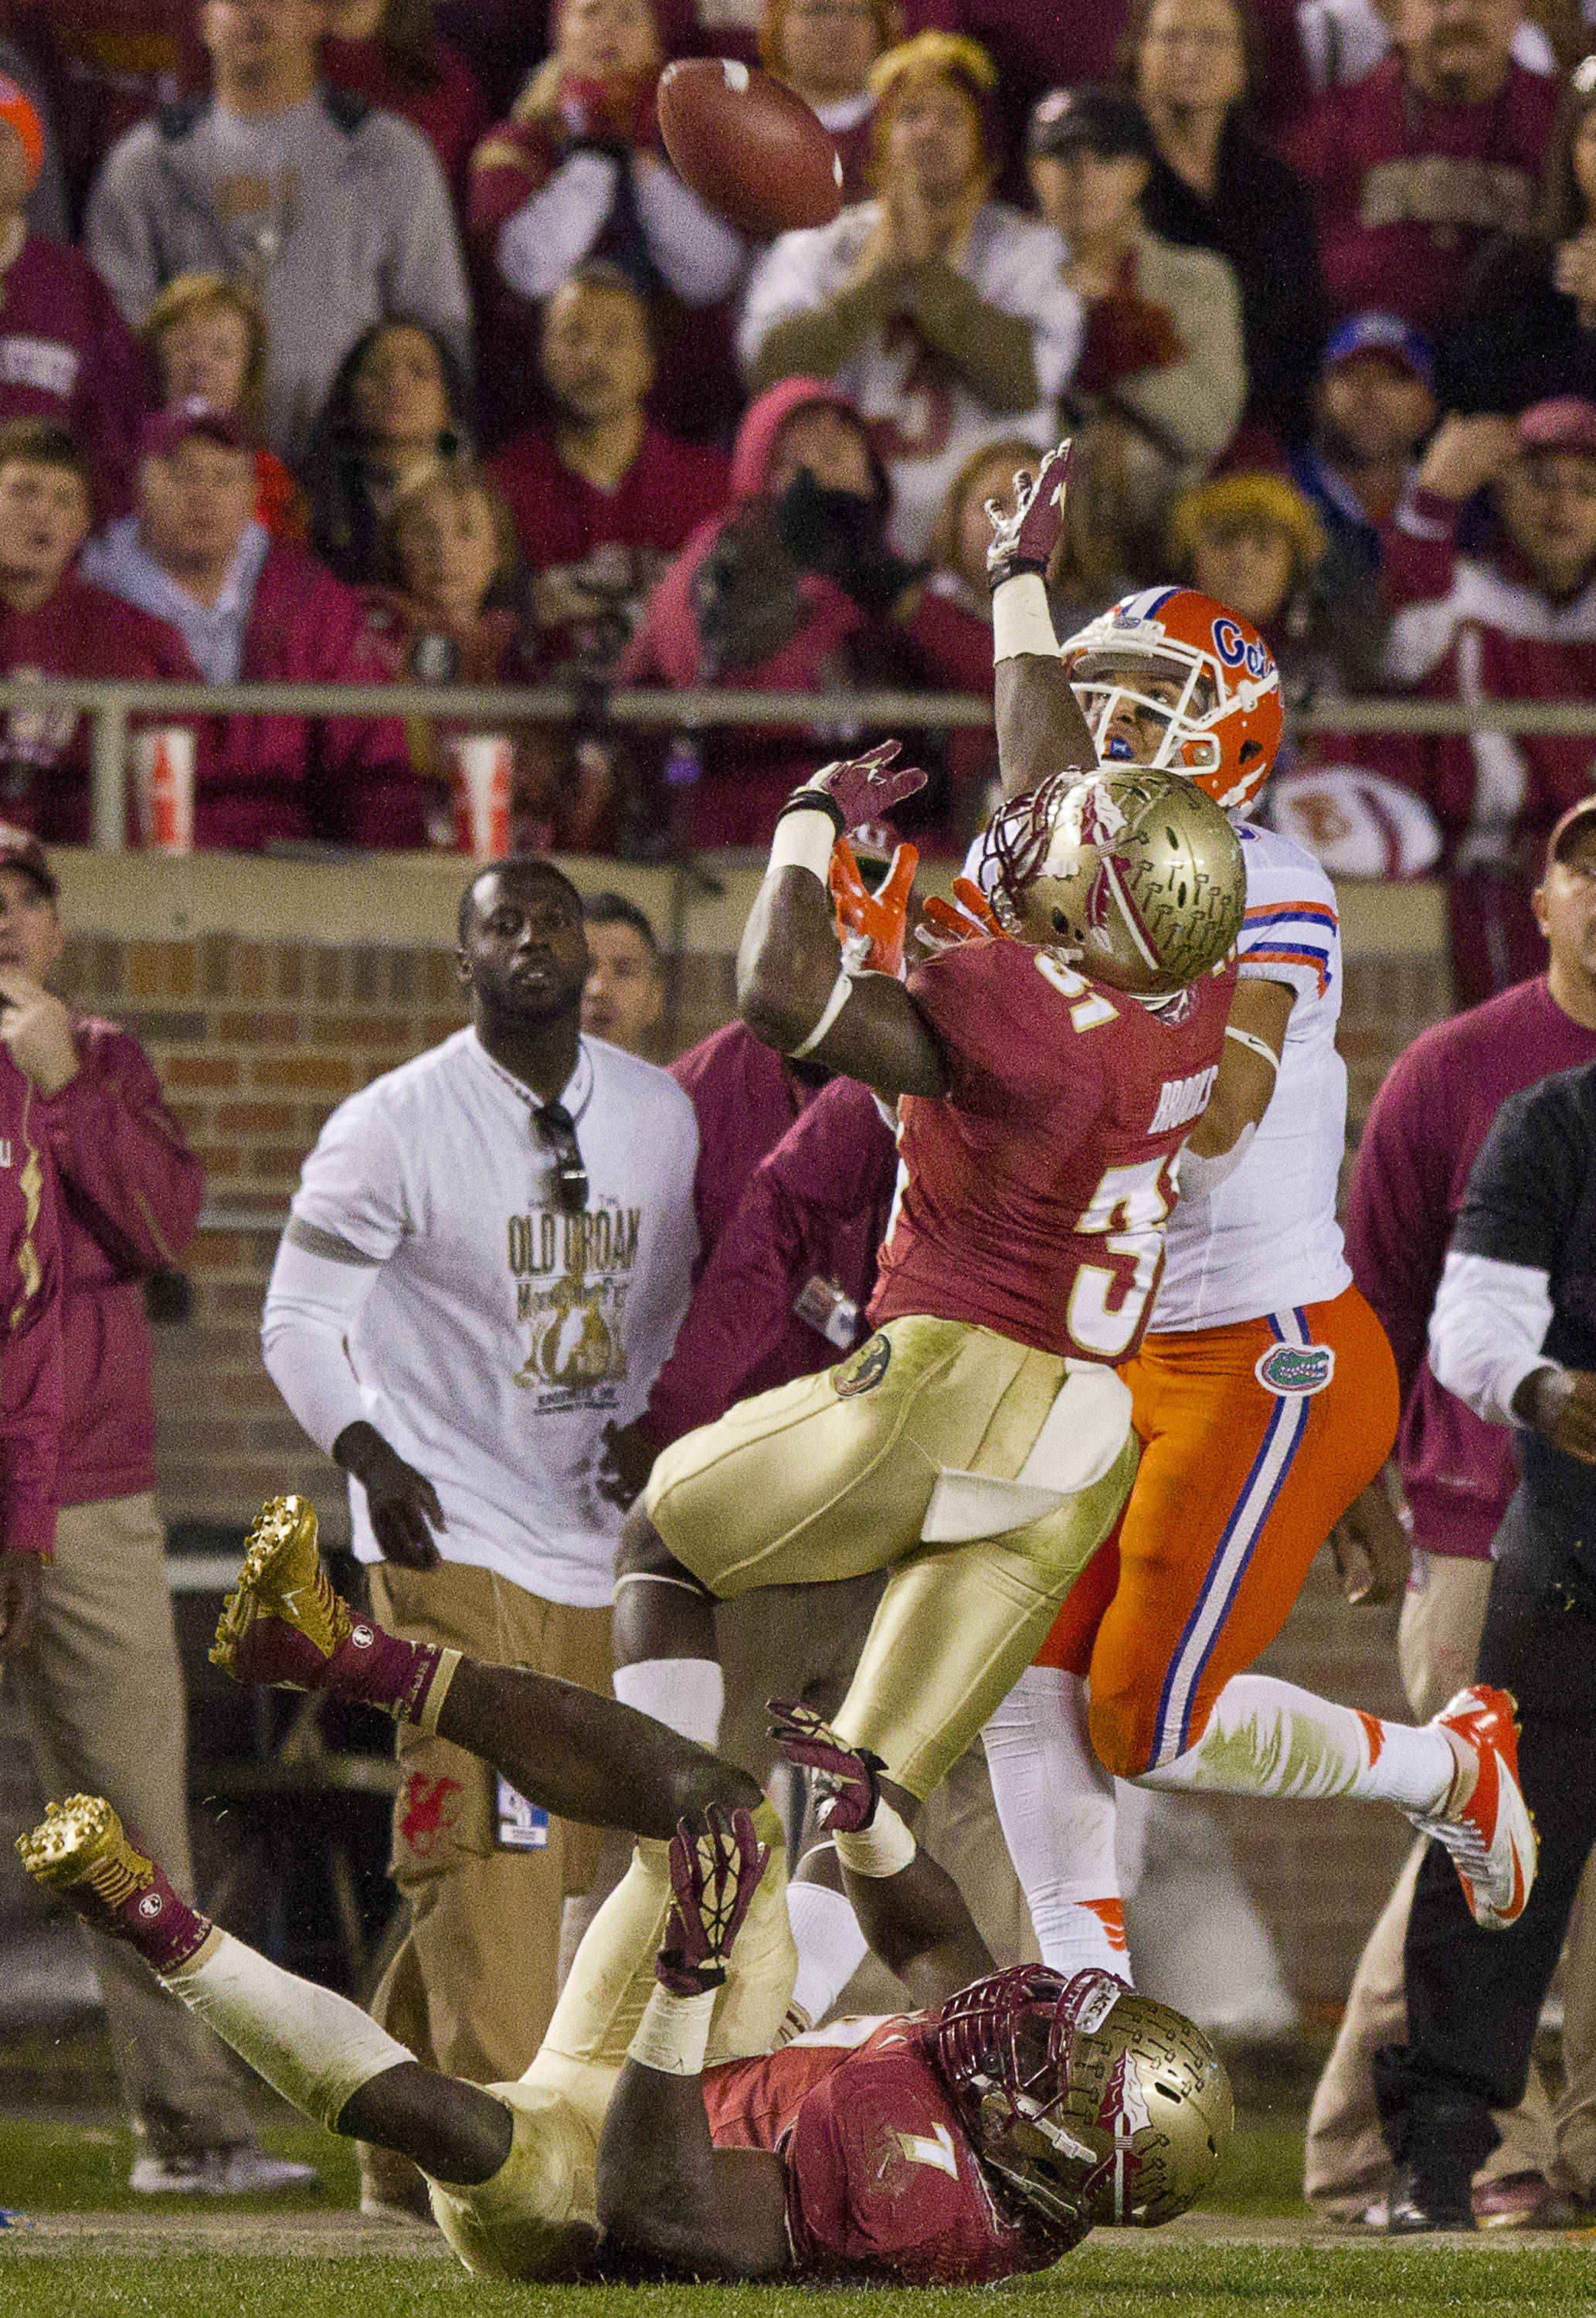 Terrence Brooks (31) attempts to break up a pass during FSU Football's game against UF on Saturday, November 24, 2012 in Tallahassee, Fla.